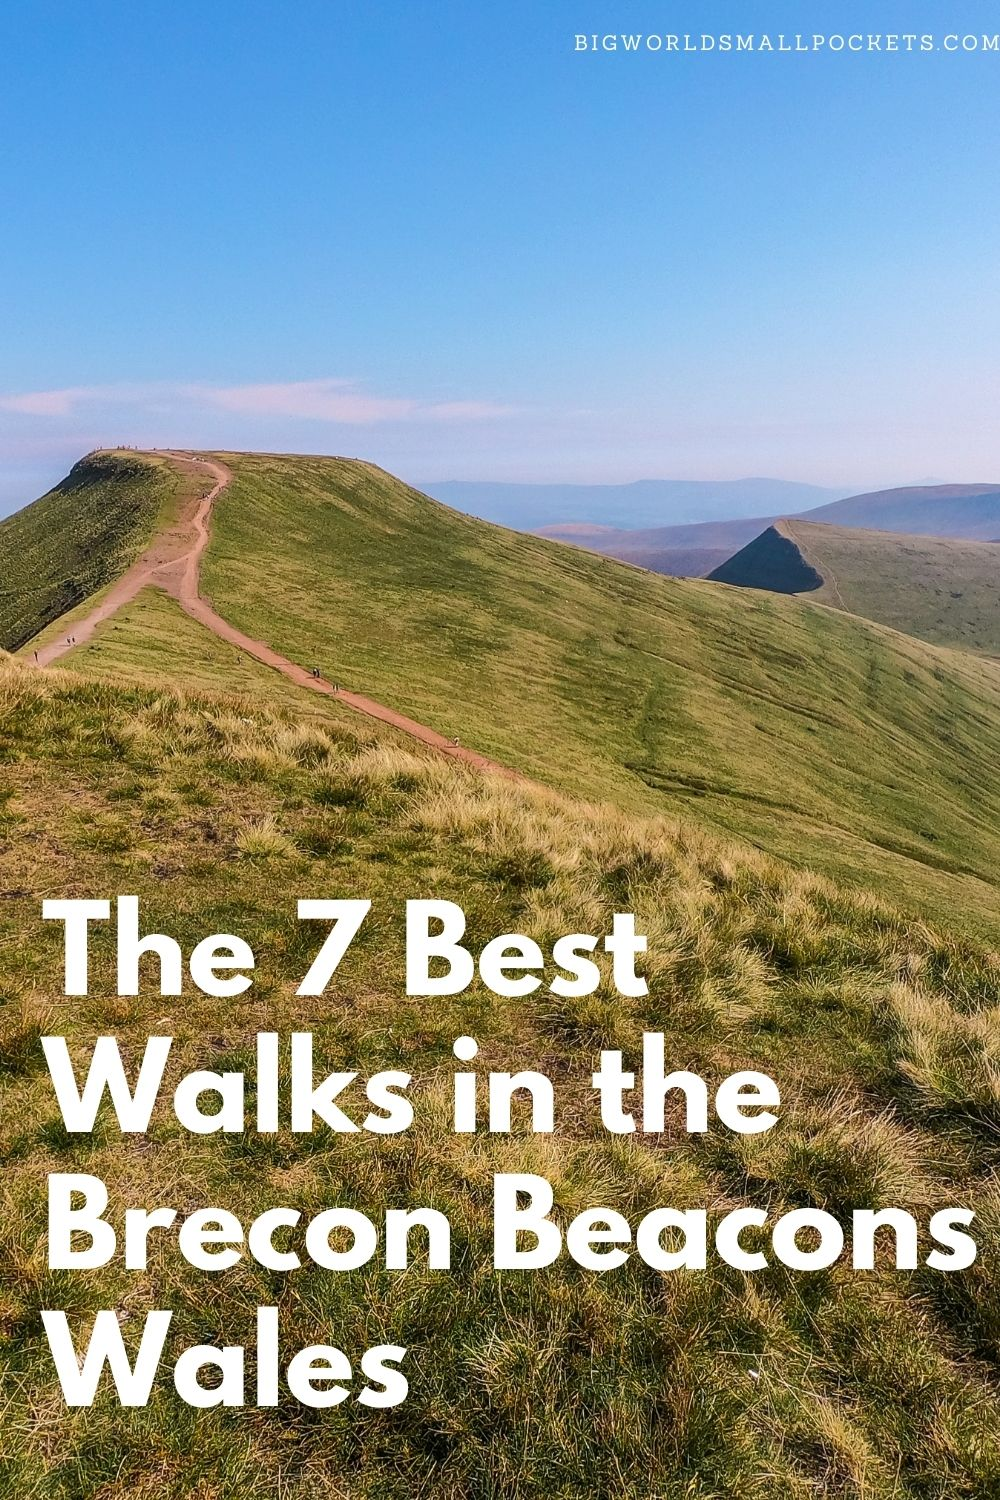 The 7 Best Walks in the Brecon Beacons, Wales